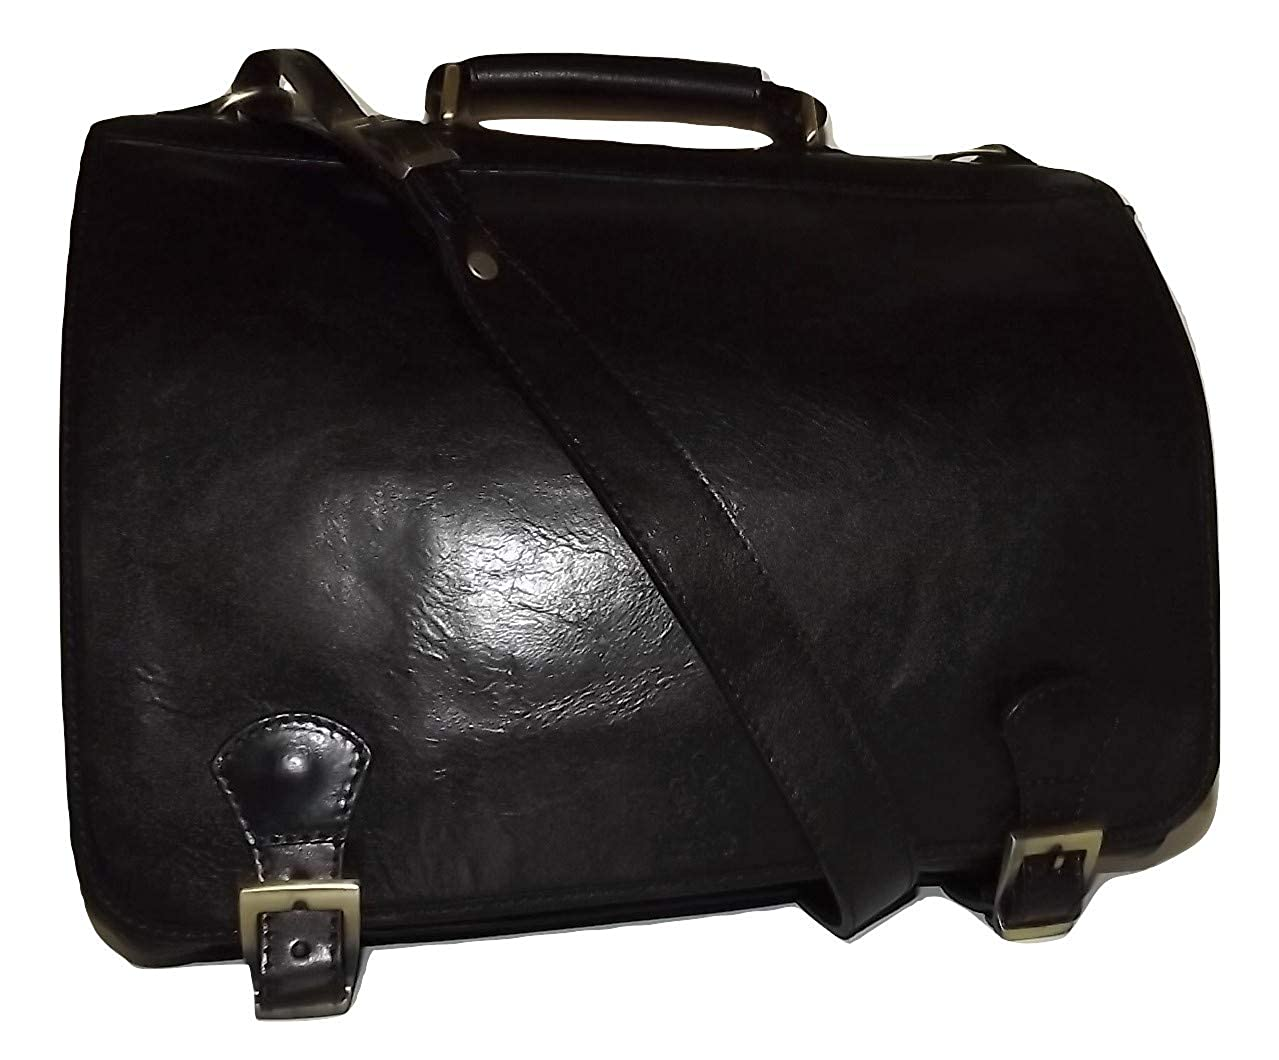 Baglioni Italia Florentine Leather Front Flap Double Gusset Briefcase Black